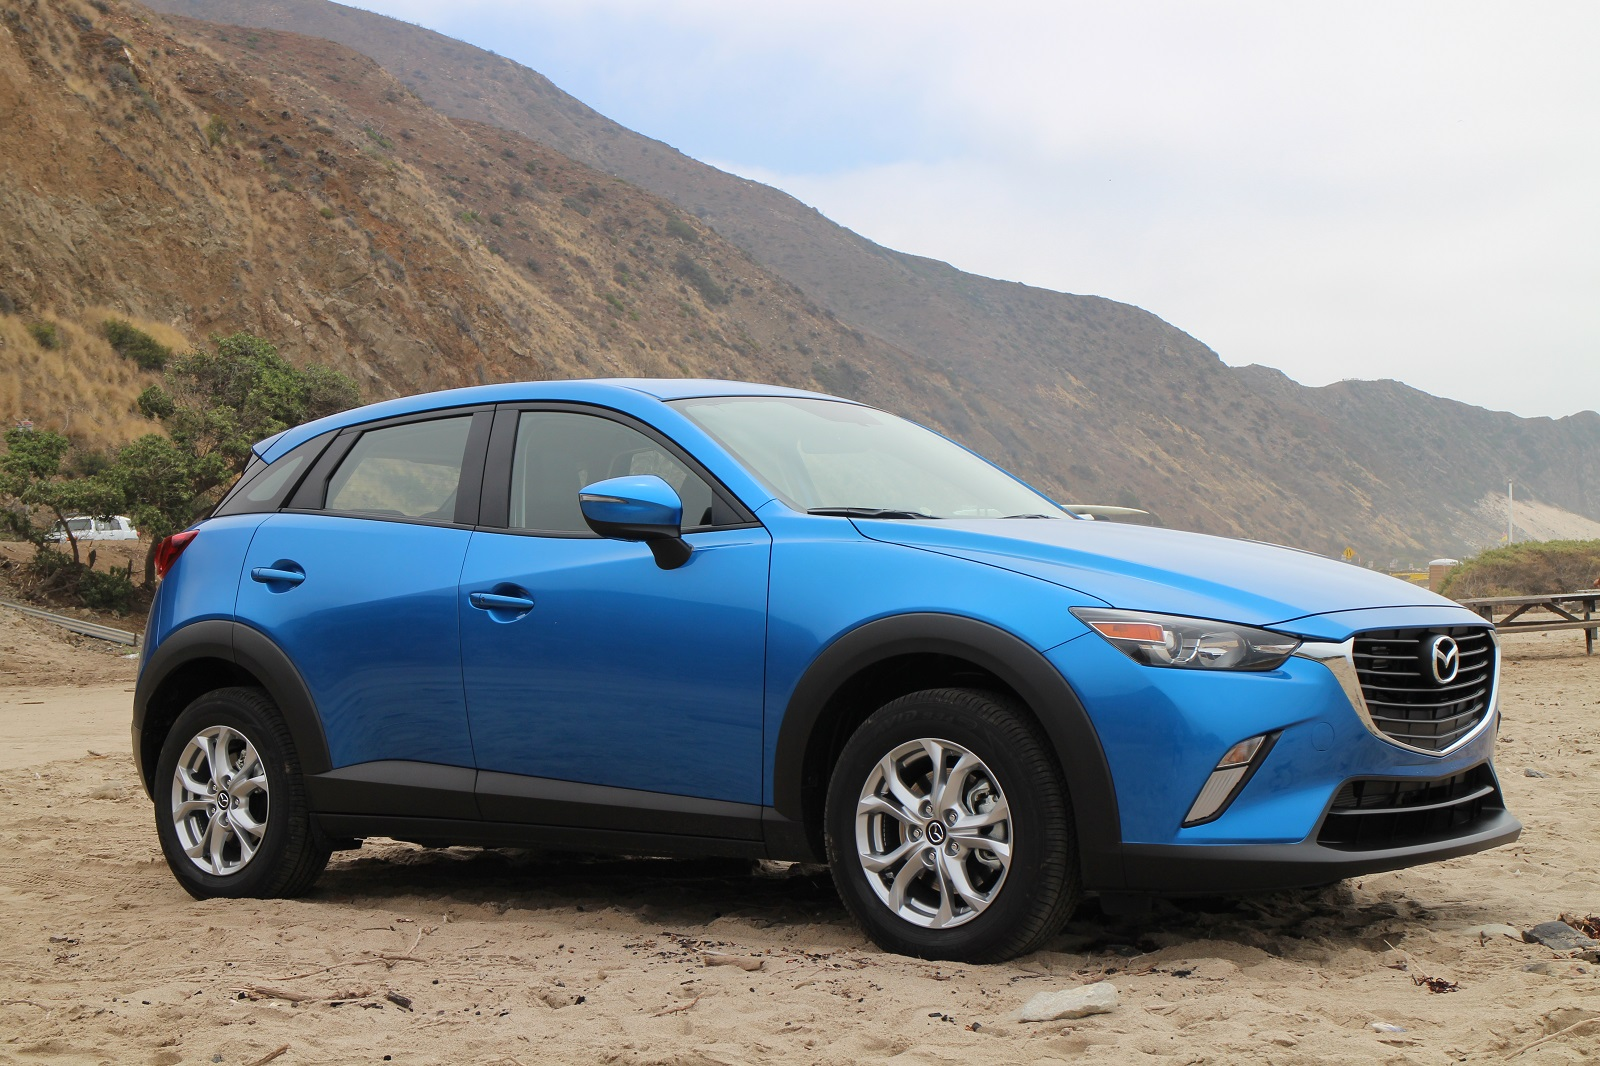 2016 mazda cx-3 video road test